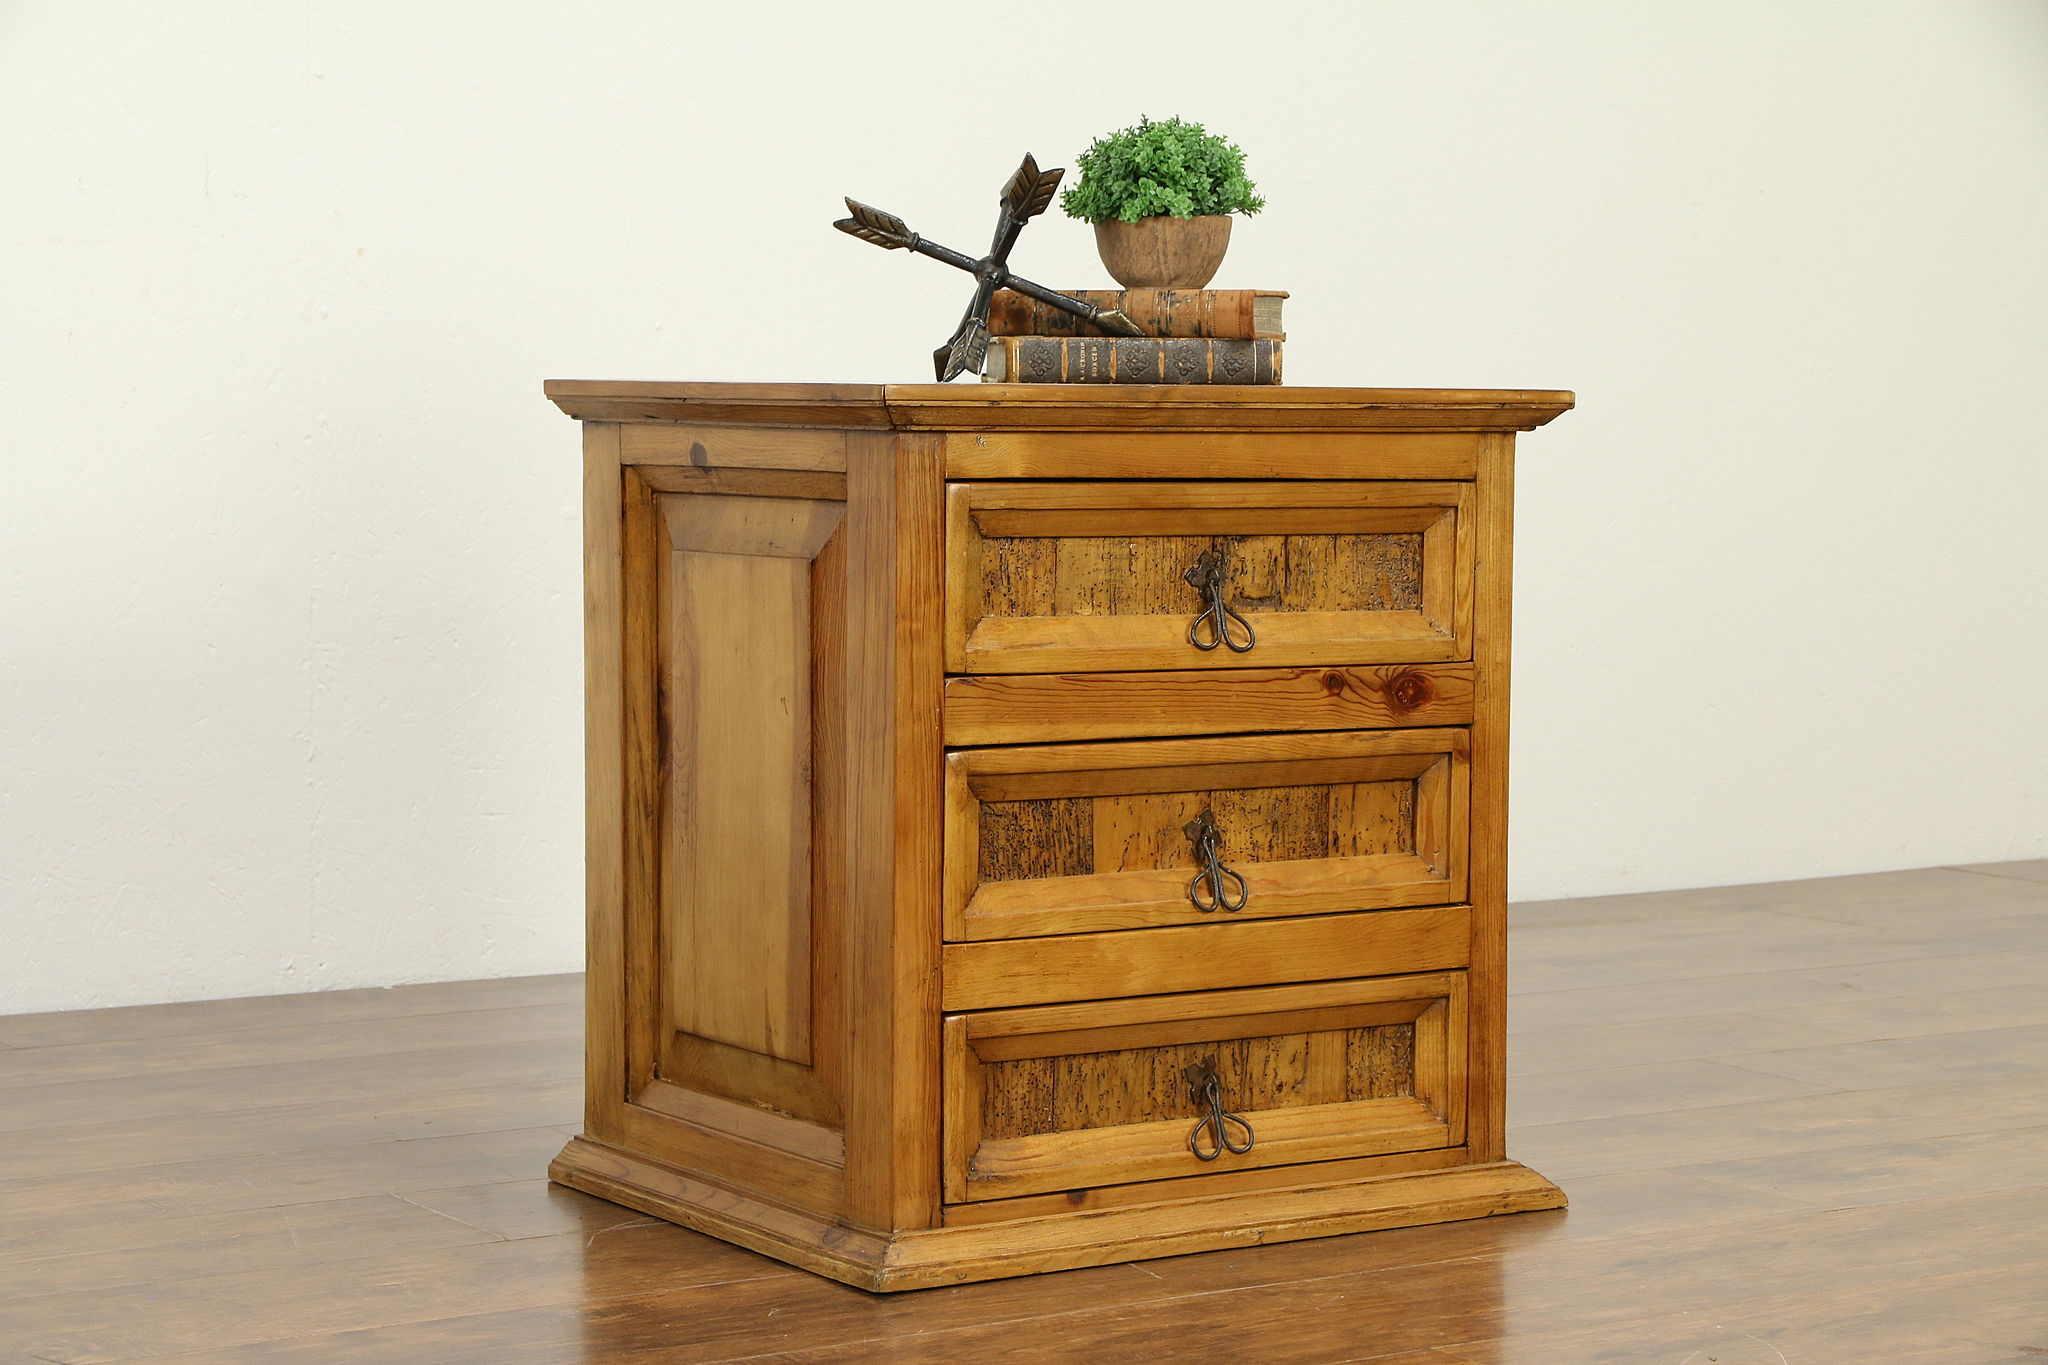 Sold Rustic Country Pine Farmhouse Vintage Small Chest End Table Nightstand 32954 Harp Gallery Antiques Furniture